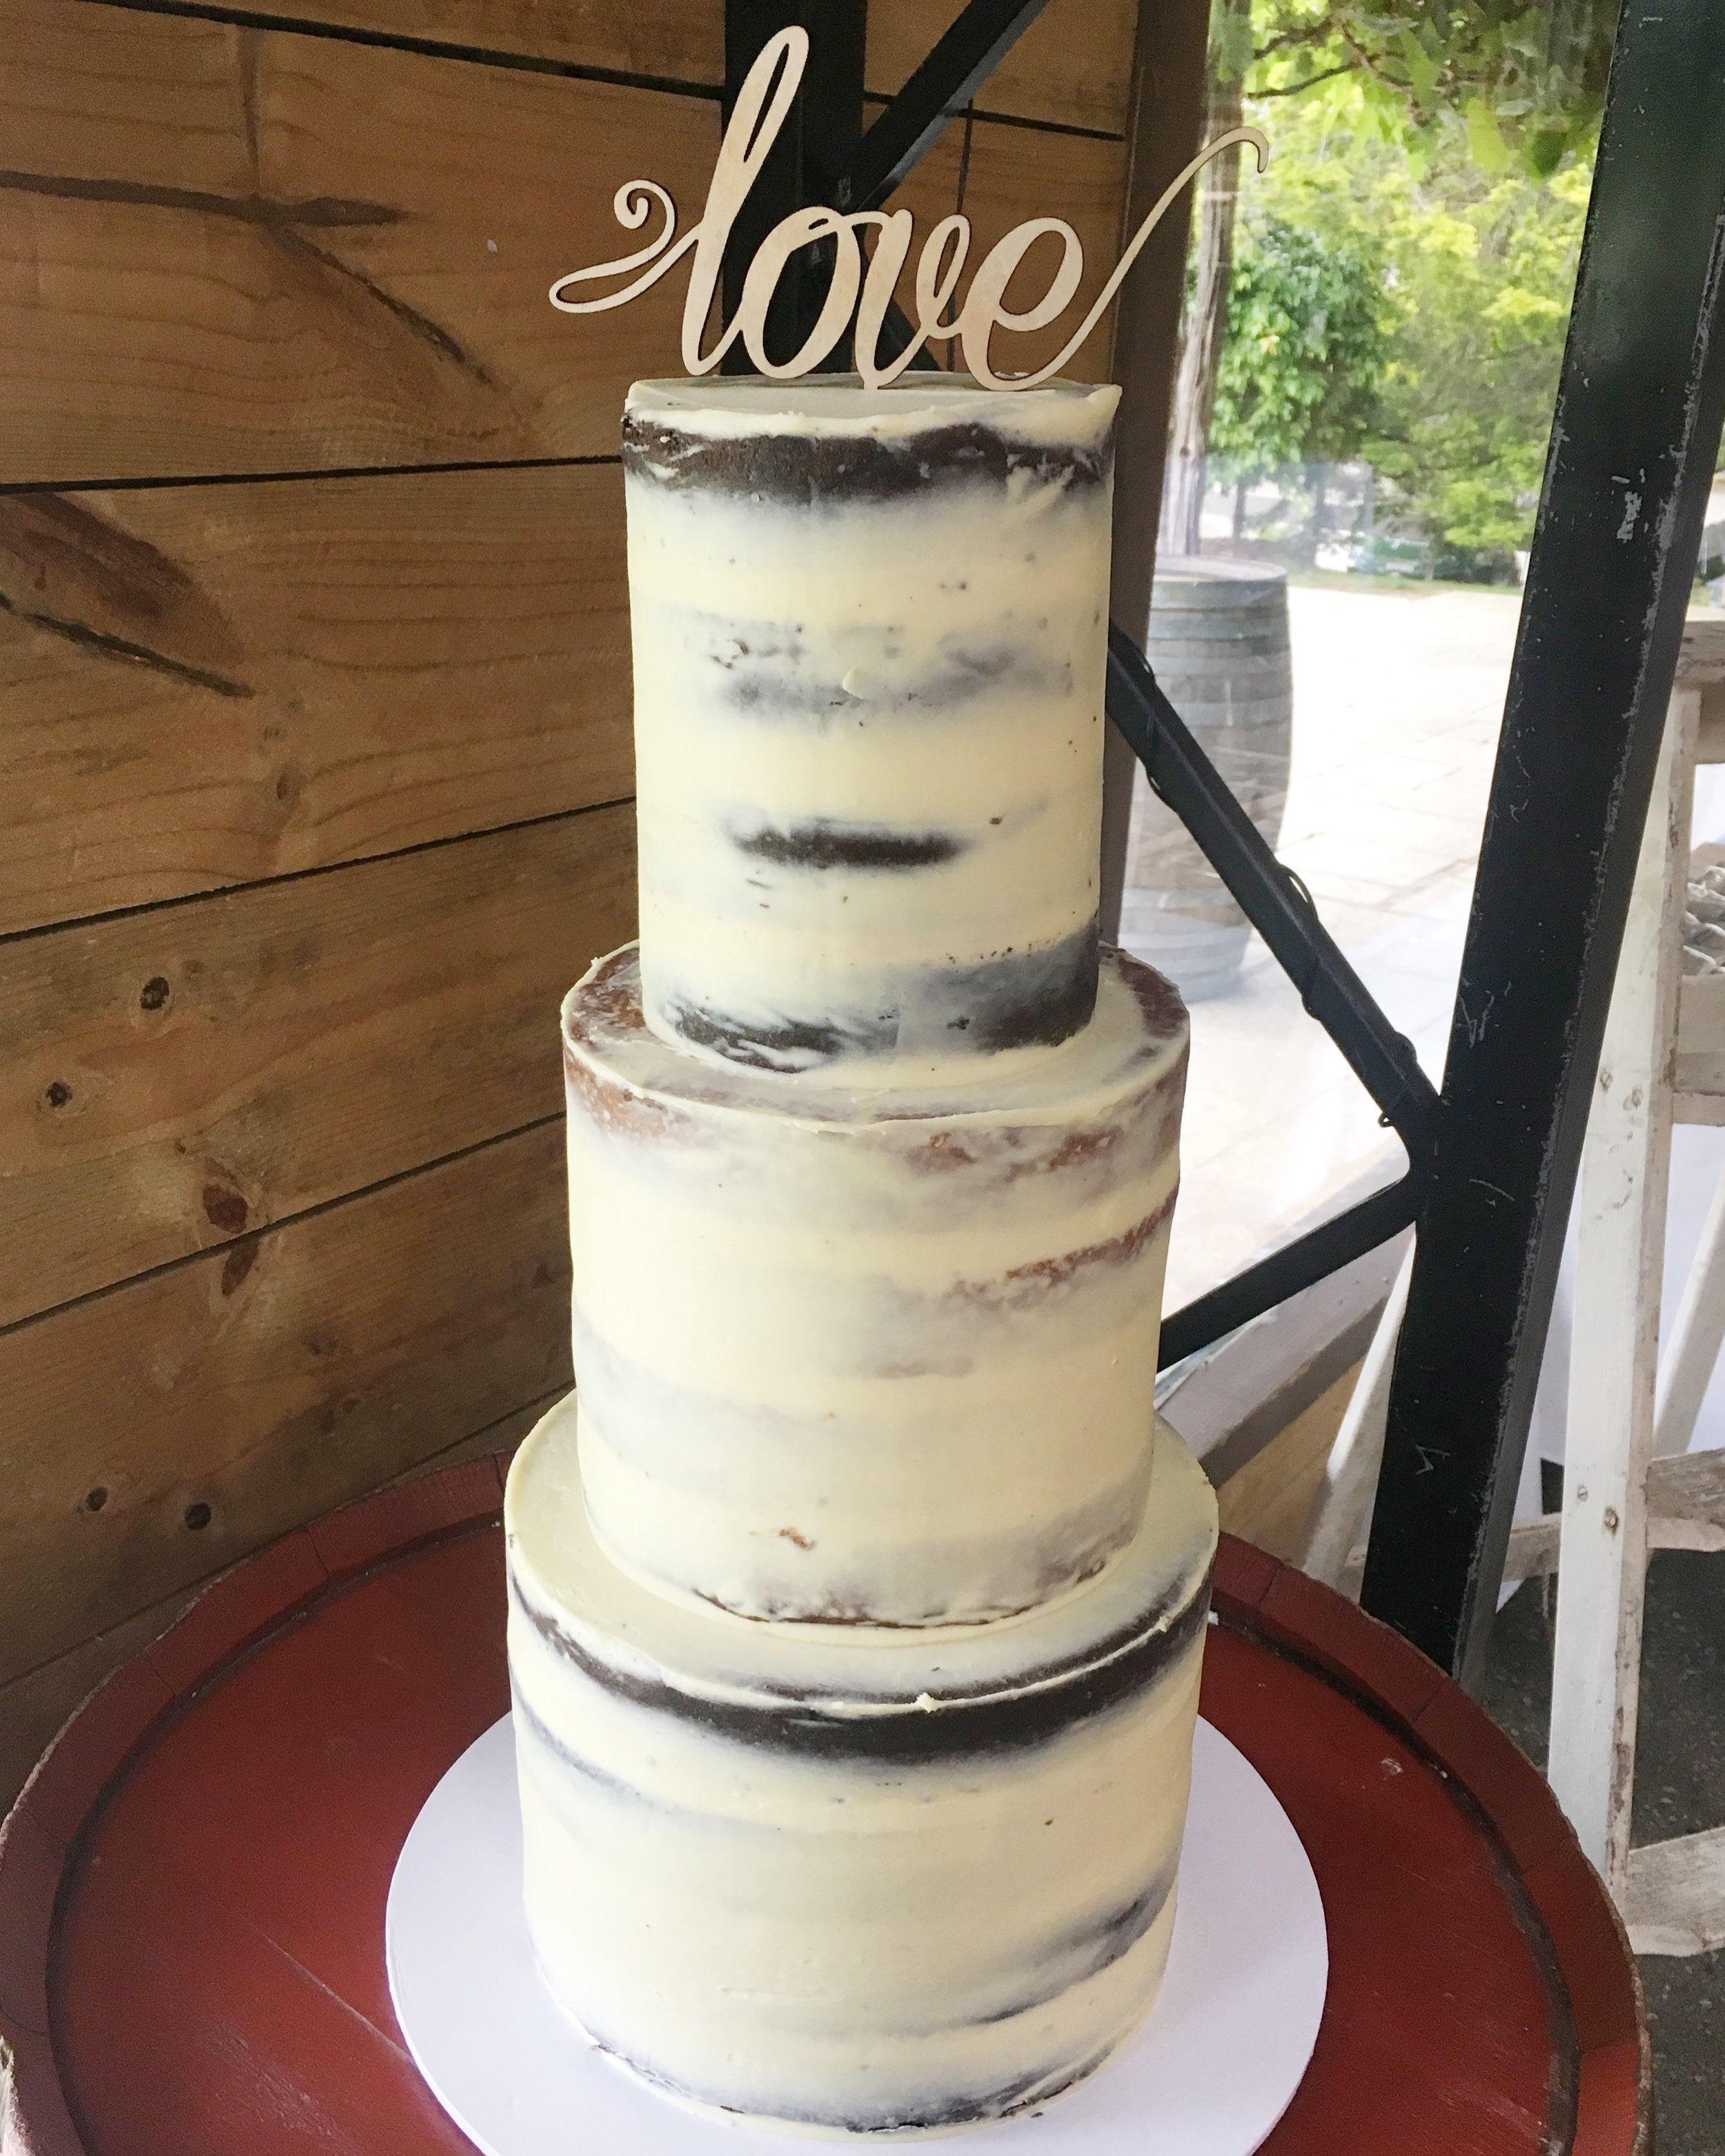 Naked Cake with 'Love' Topper